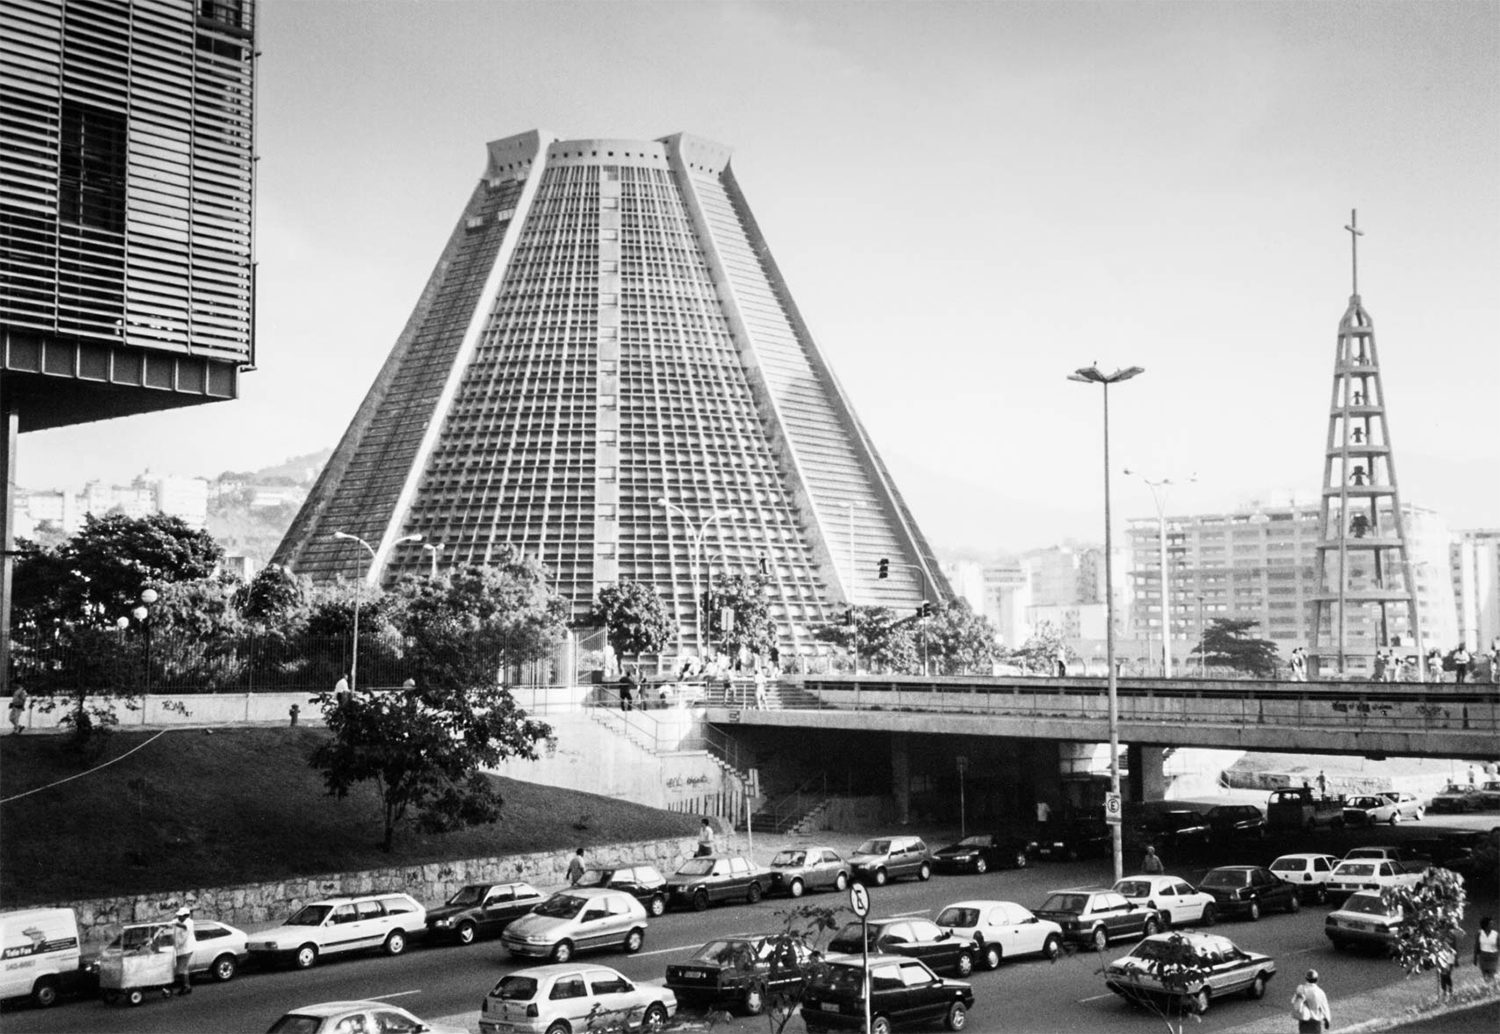 <p>Edgar Fonceca's concrete pyramidal cathedral was part of a wave of modernism in Brazil in the 1960s and 1970s (including a whole new capital city built on the ideals, Brasilia). In the foreground corner you can see a bit of another modernist stunner, the EDISE headquarters for Petrobras.</p>